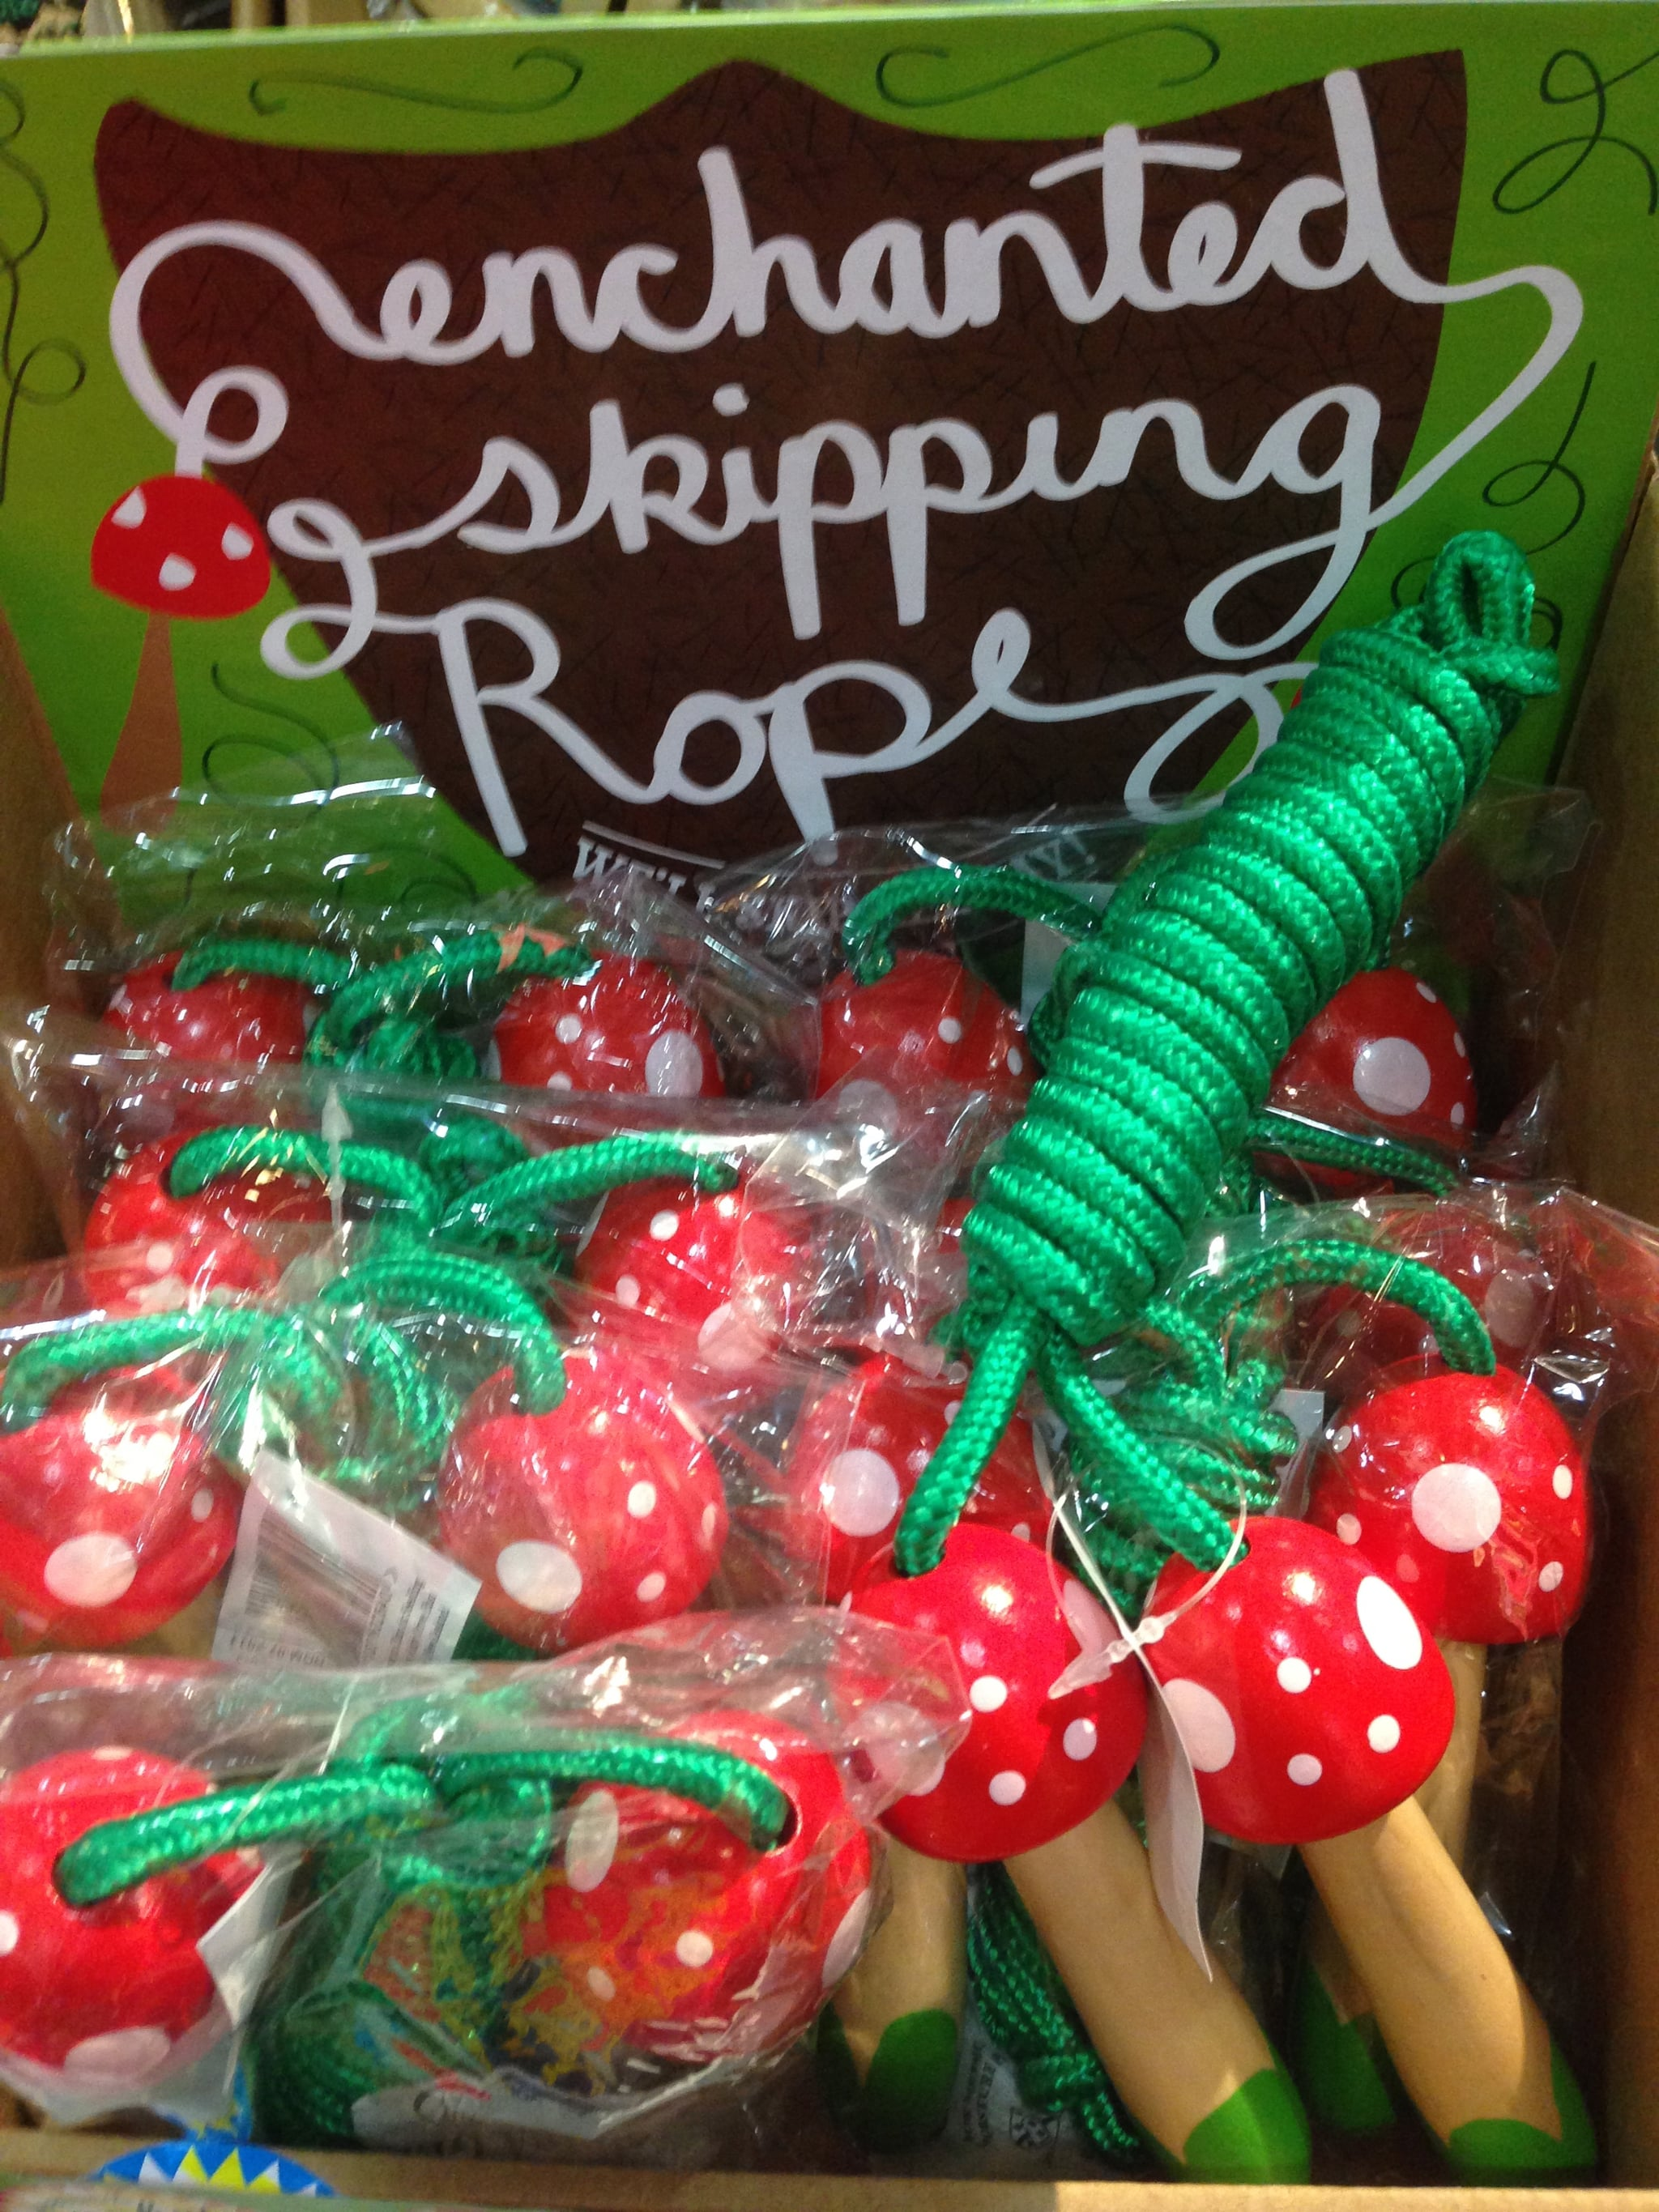 Seedling Enchanted Skipping Rope